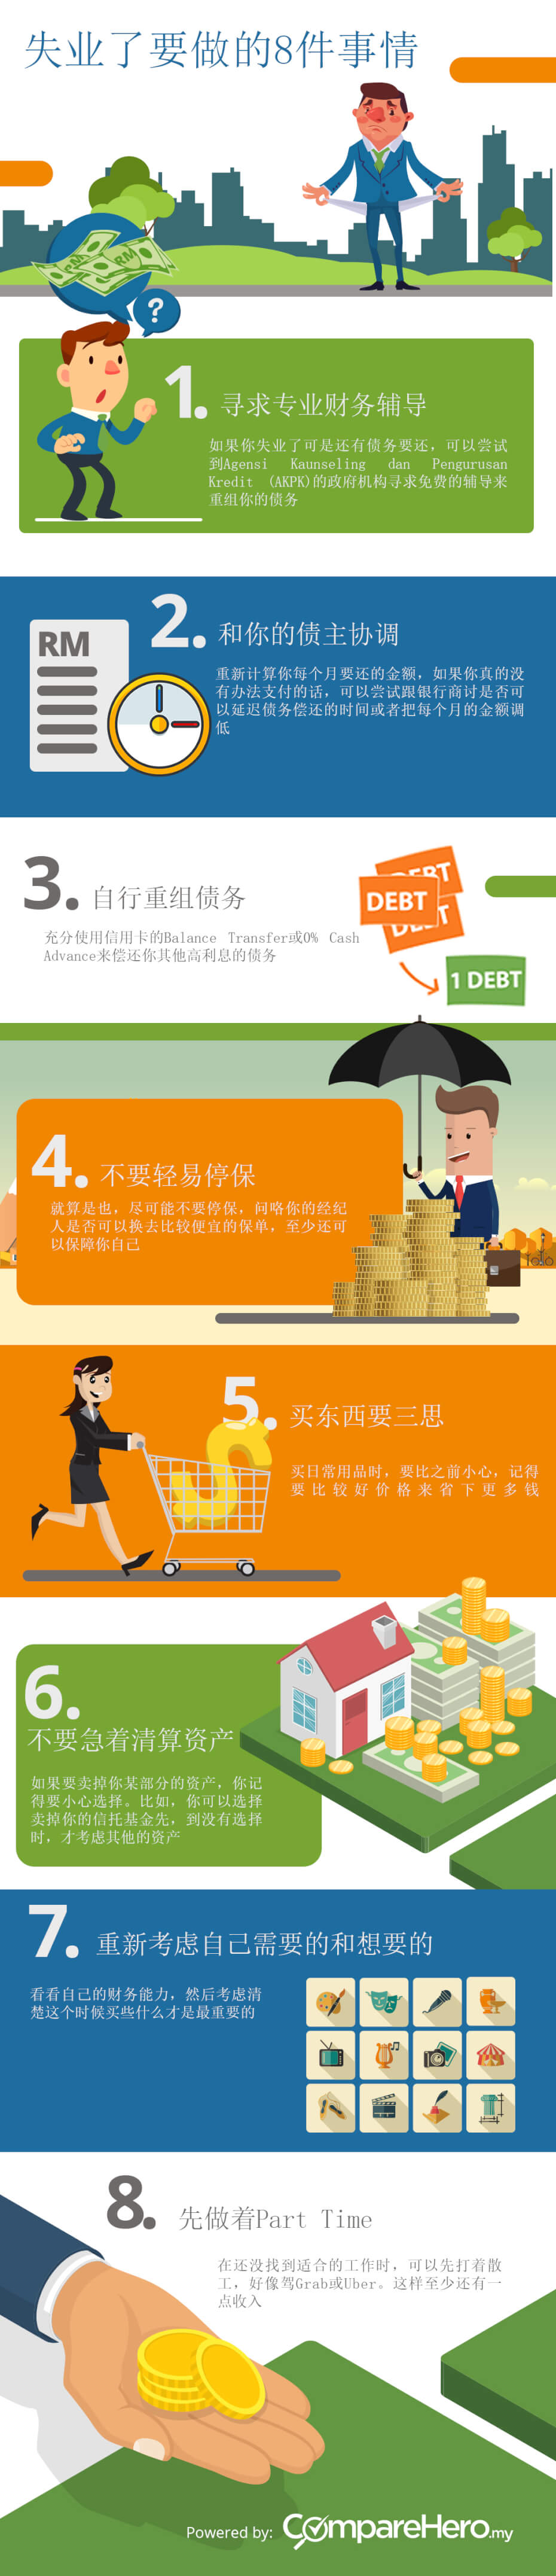 personal_finance_tips_for_the_unemployed_-_chi